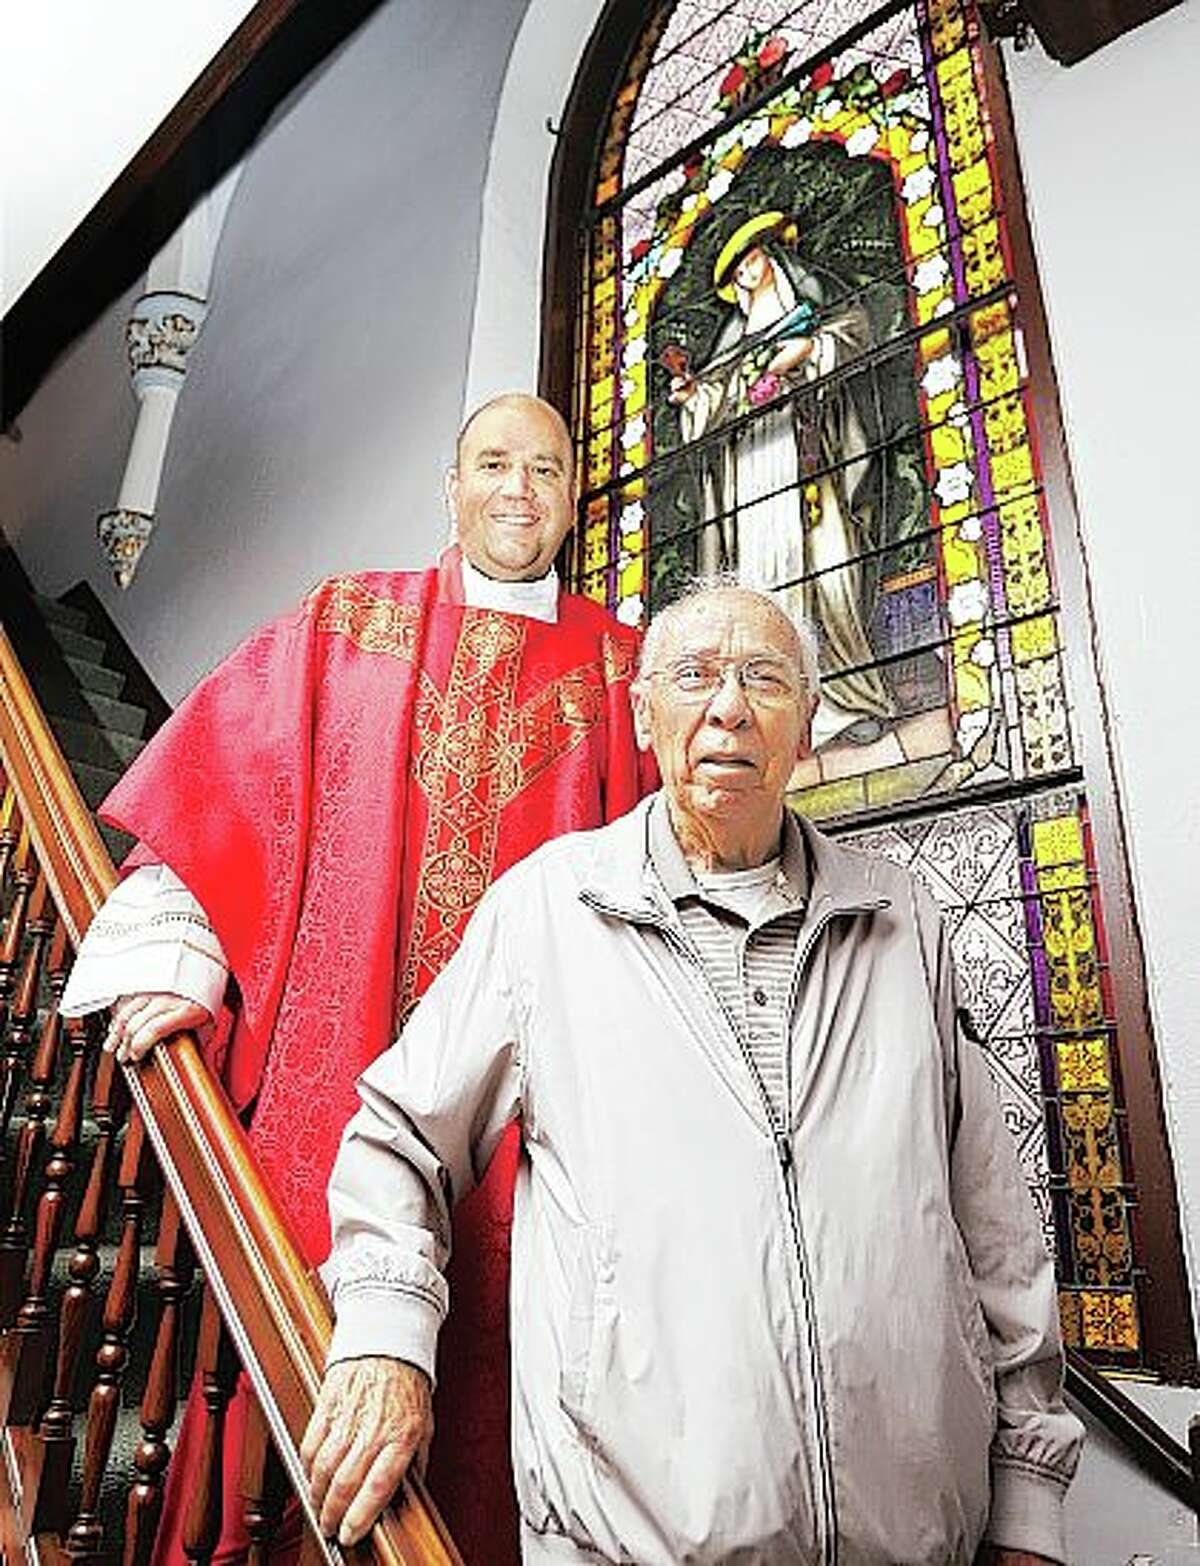 The Rev. Martin Smith stands with longtime St. Francis Xavier Church member John Thurston in front of one of the stained glass windows in the church. The church will celebrating its 150th anniversary with a Mass and reception Sunday.